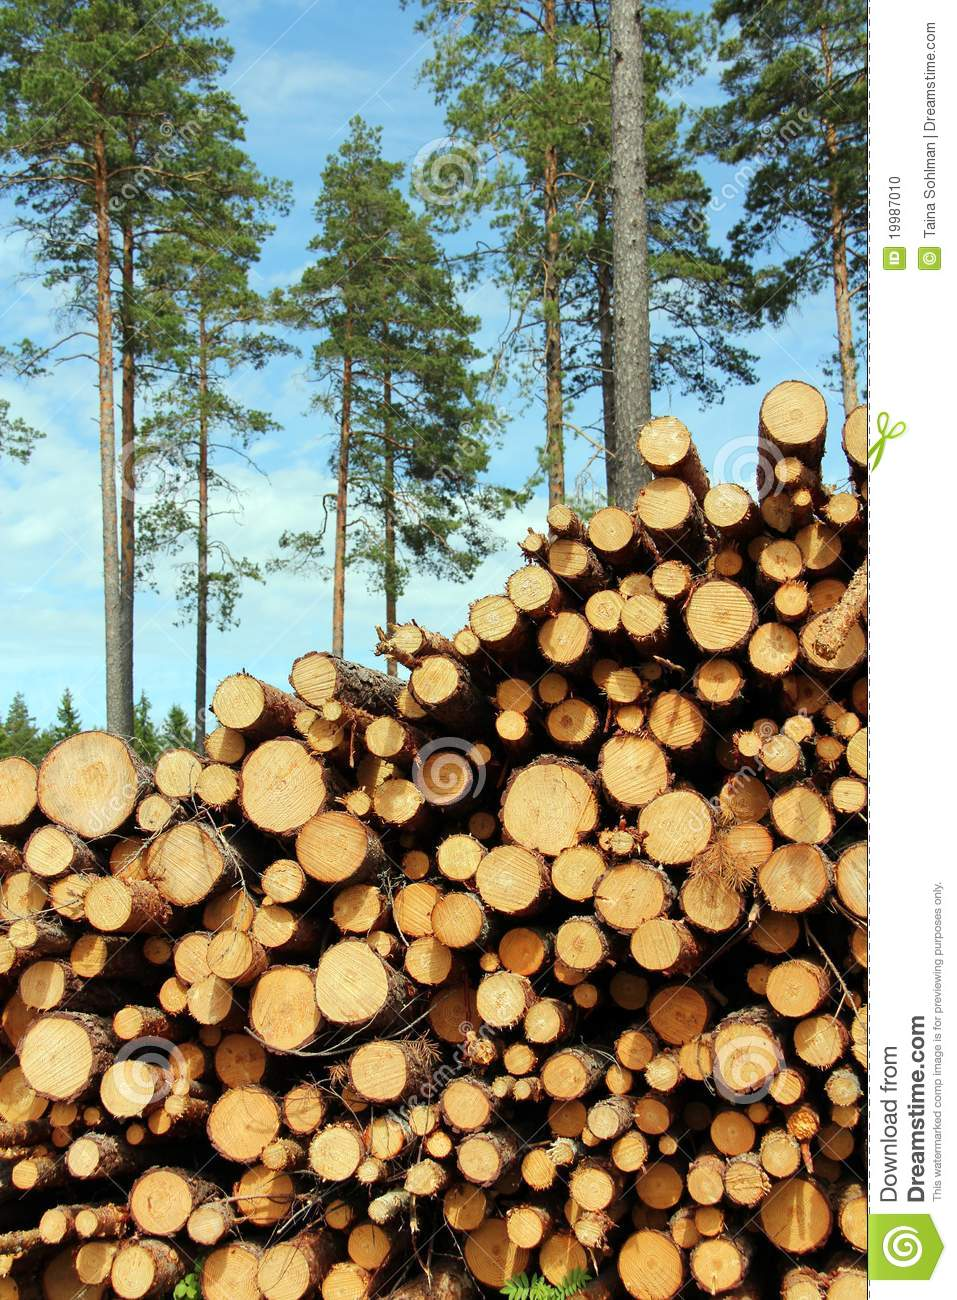 a large stack of wood with pine trees background stock